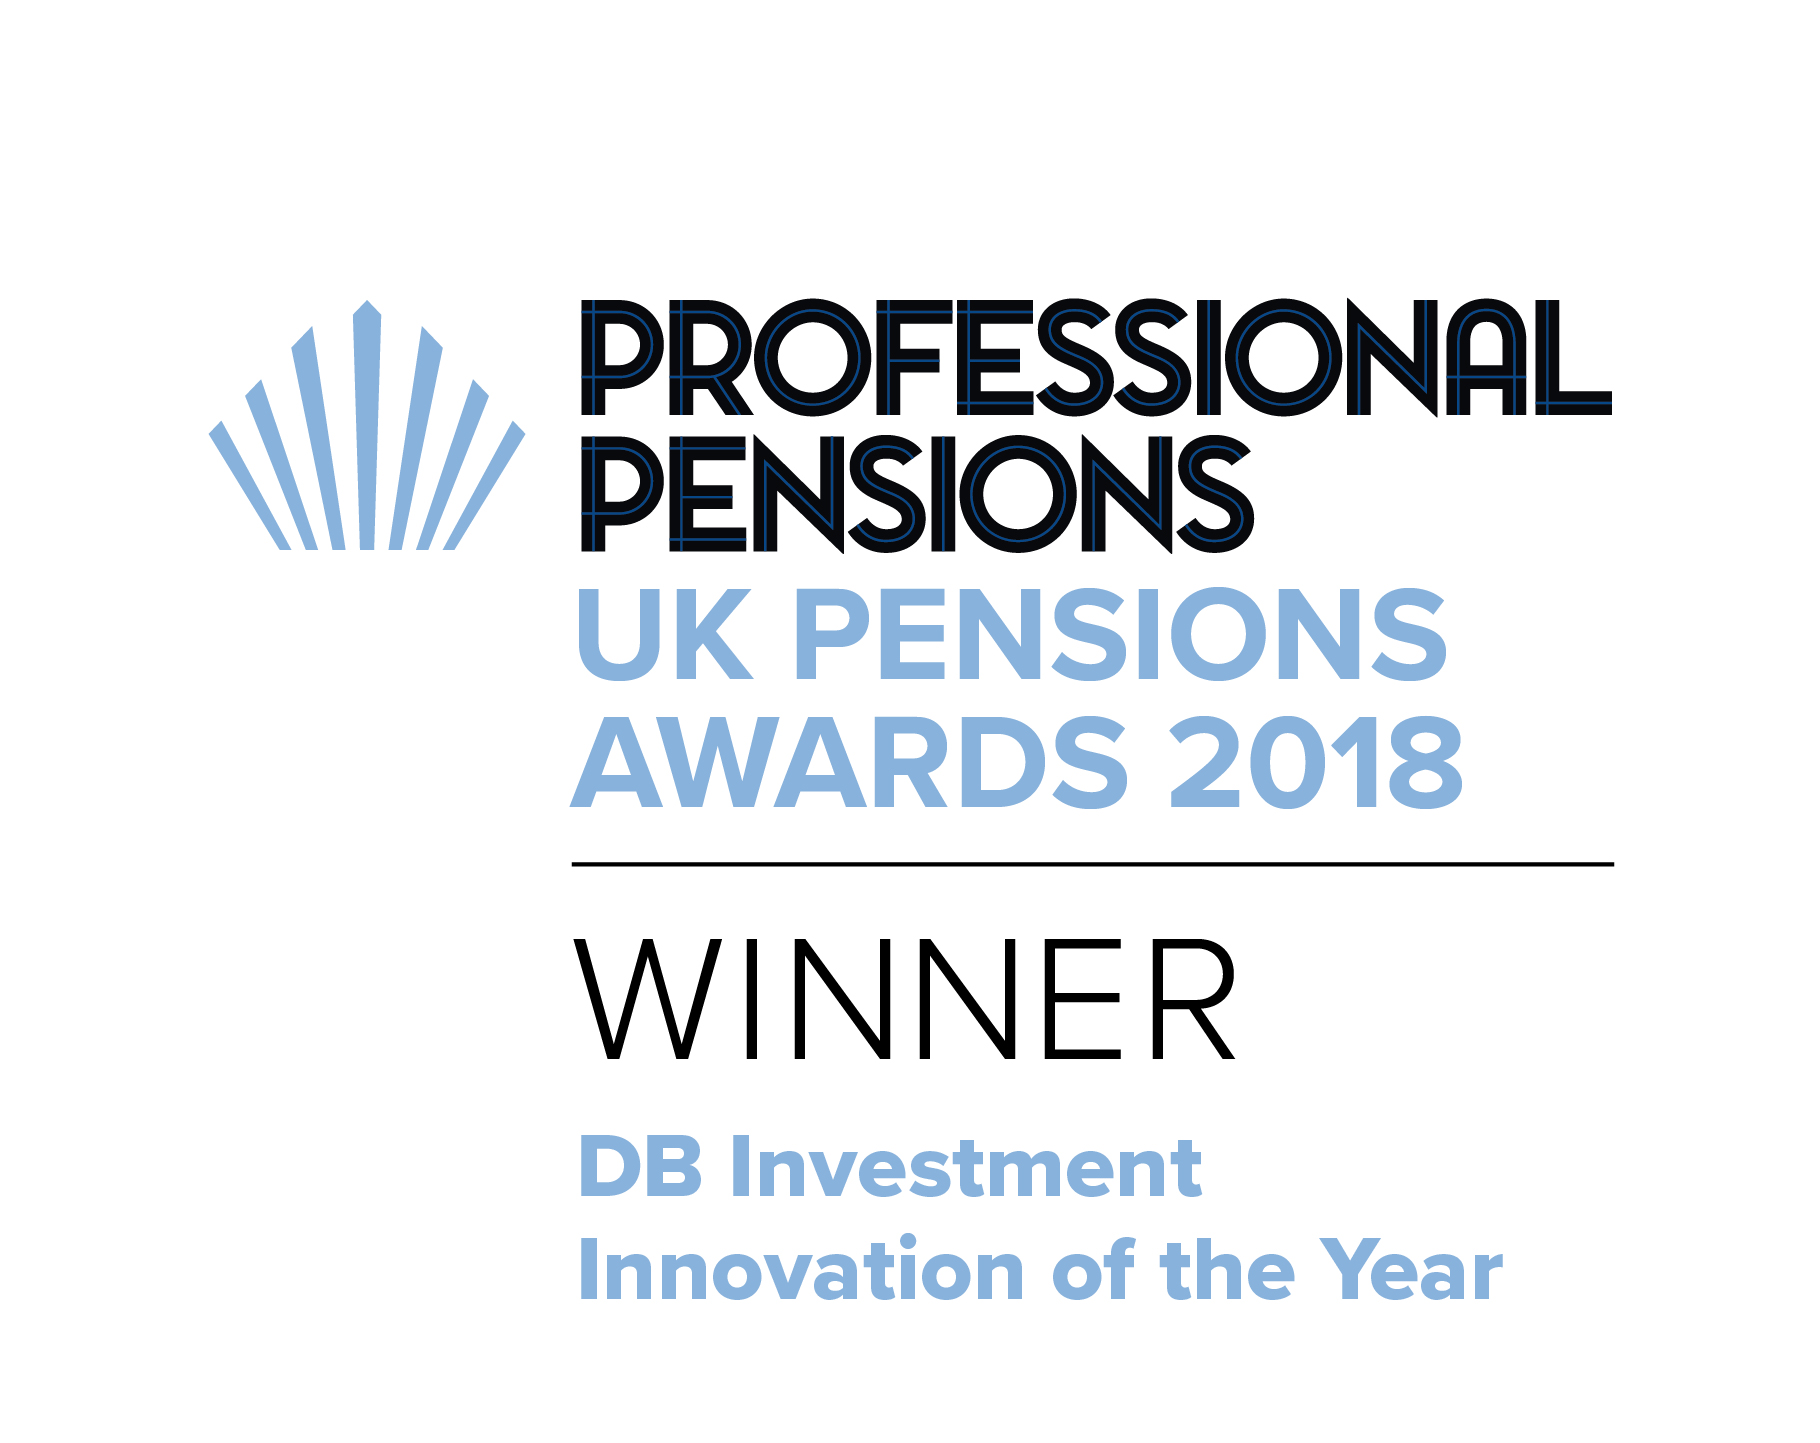 2018 UK Pensions Awards - DB Investment Innovation of the Year